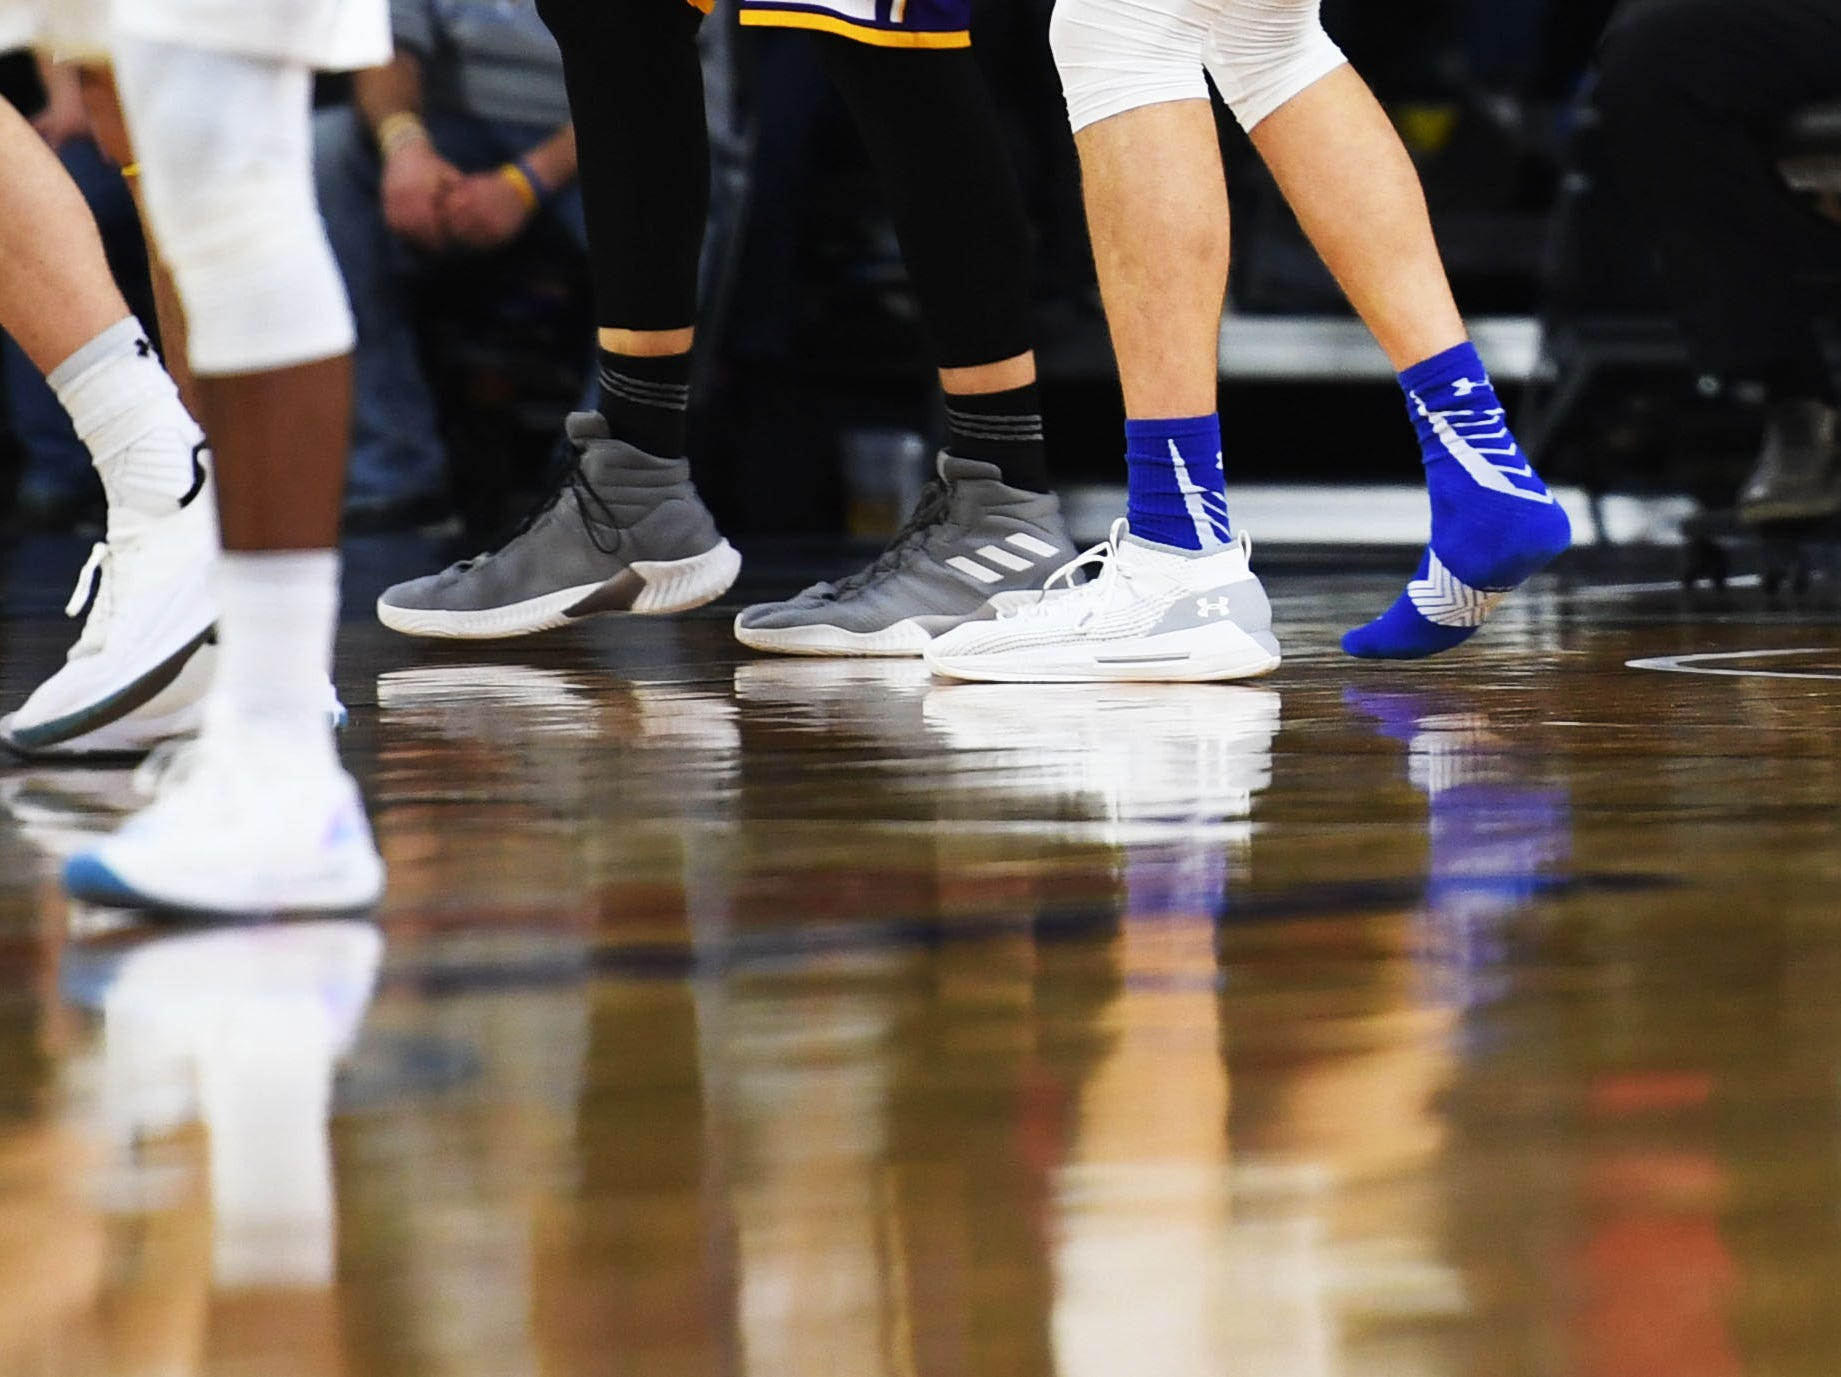 SDSU's Mike Daum looses his shoe during the game against Western Illinois Saturday, March 9, in the Summit League tournament at the Denny Sanford Premier Center in Sioux Falls.